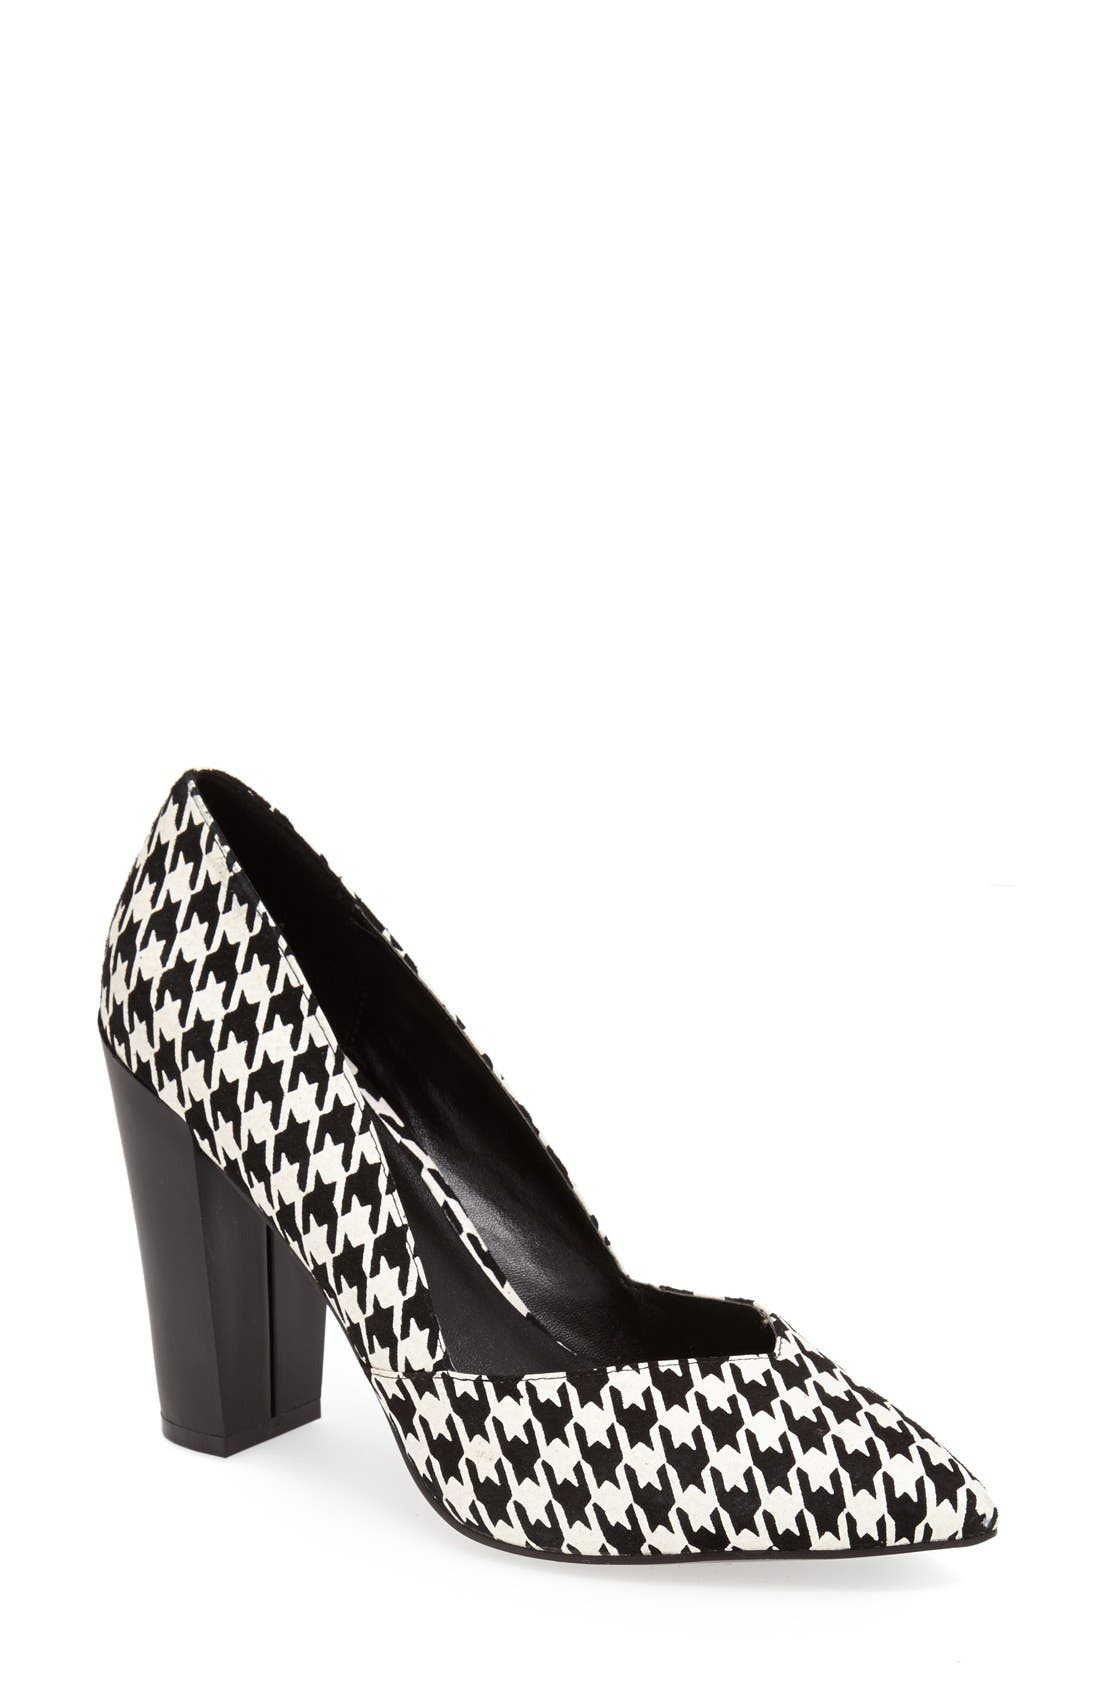 Main Image - Charles by Charles David 'Prospect' Pointy Toe Pump (Women)